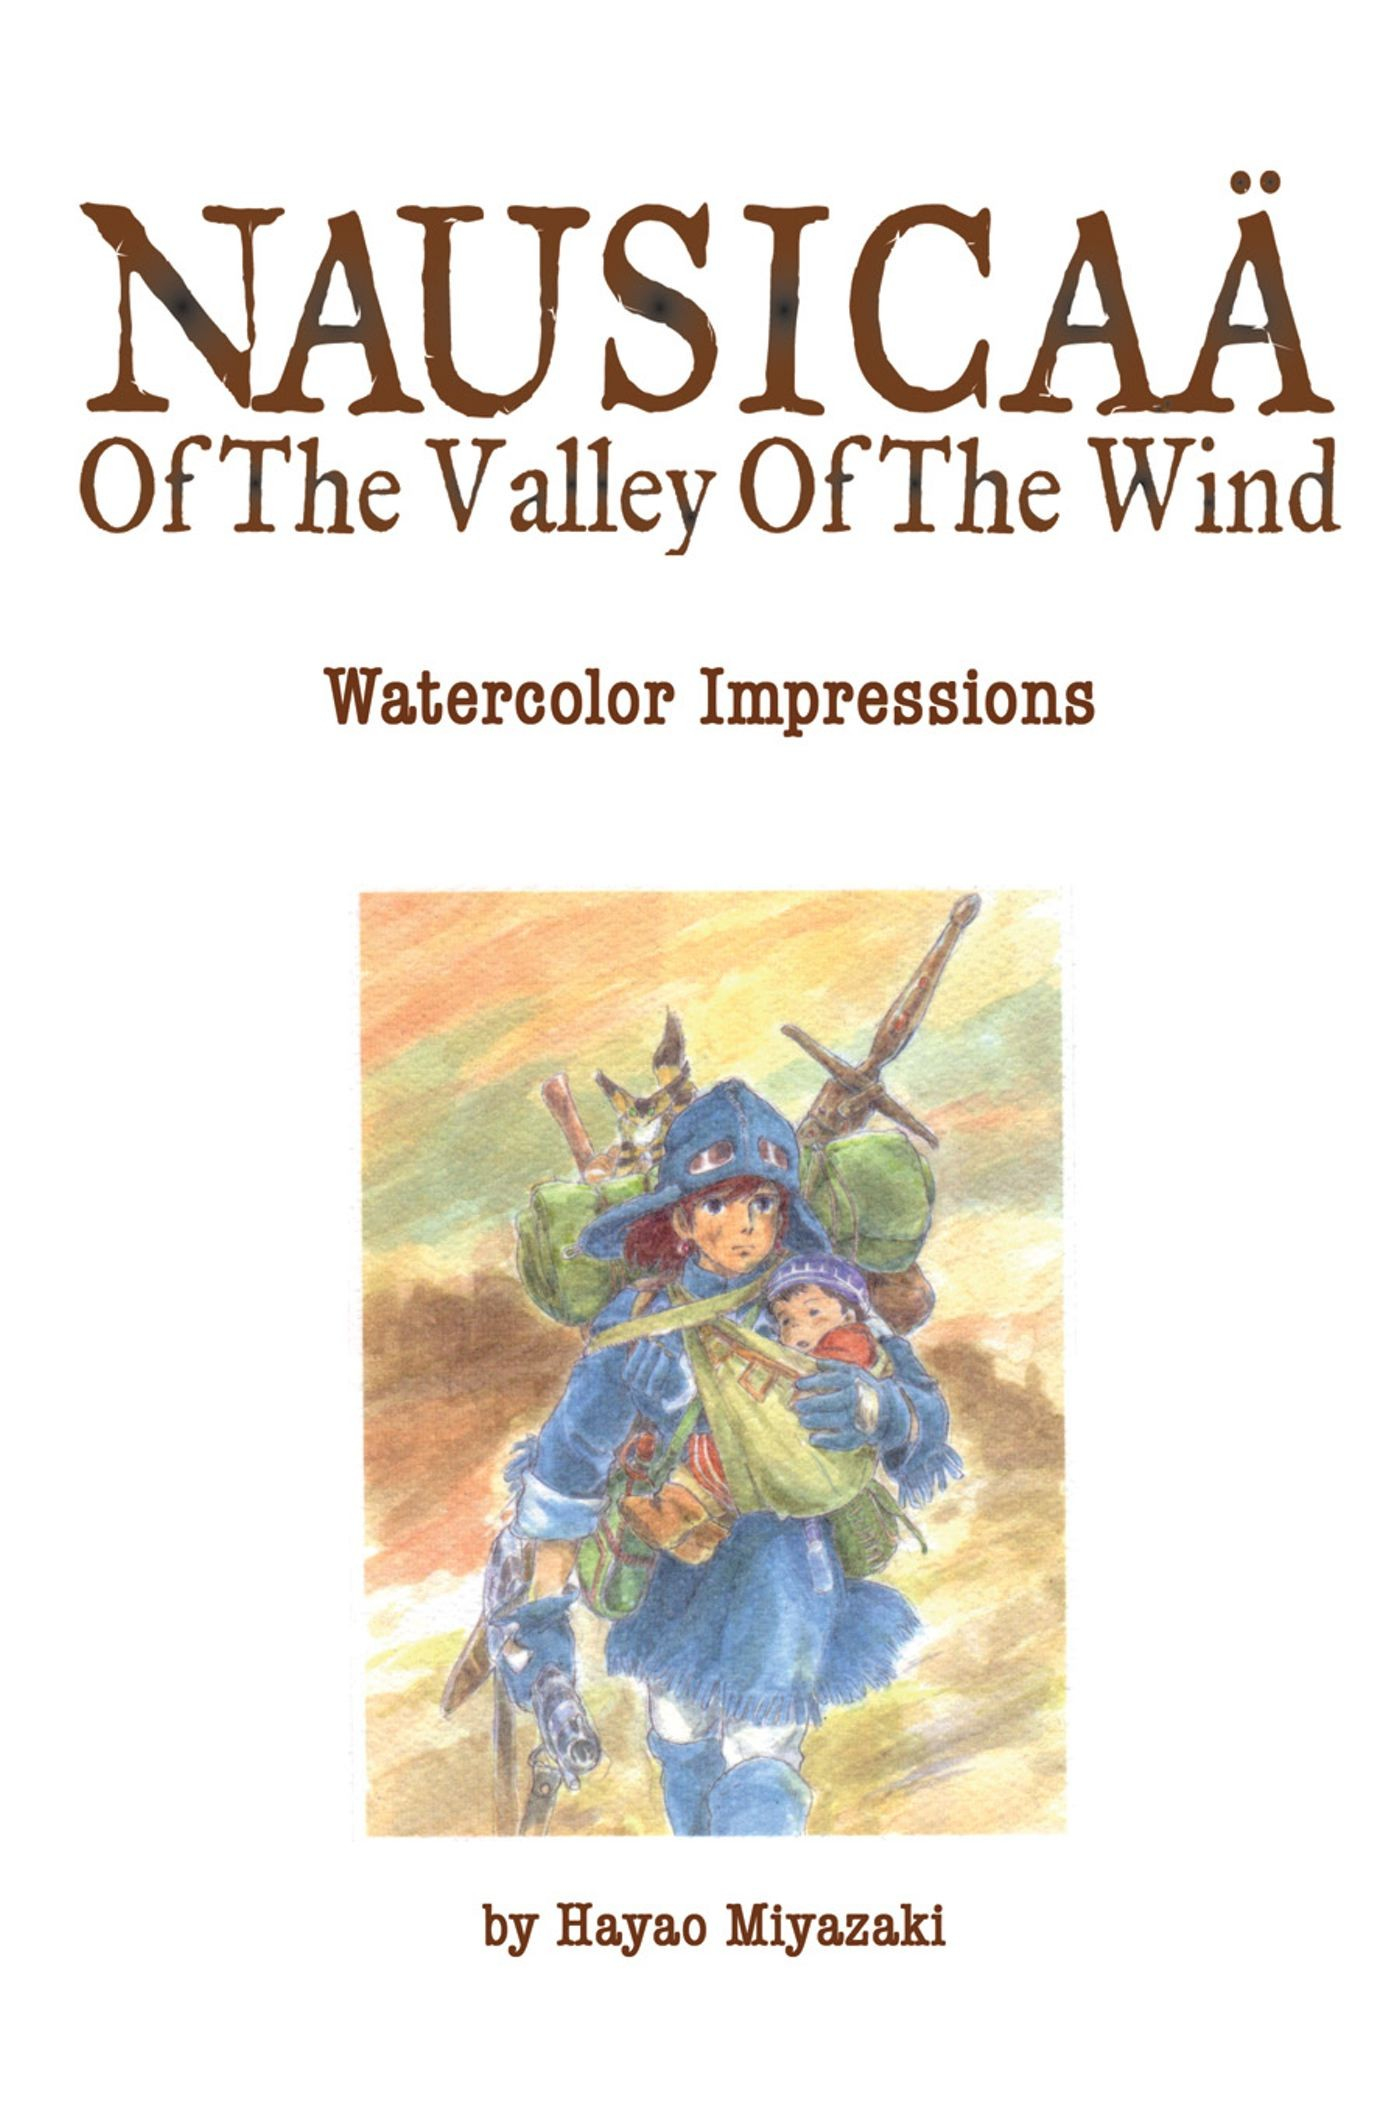 The Art of Nausicaa Valley of the Wind (Watercolor Impressions) by Hayao Miyazaki